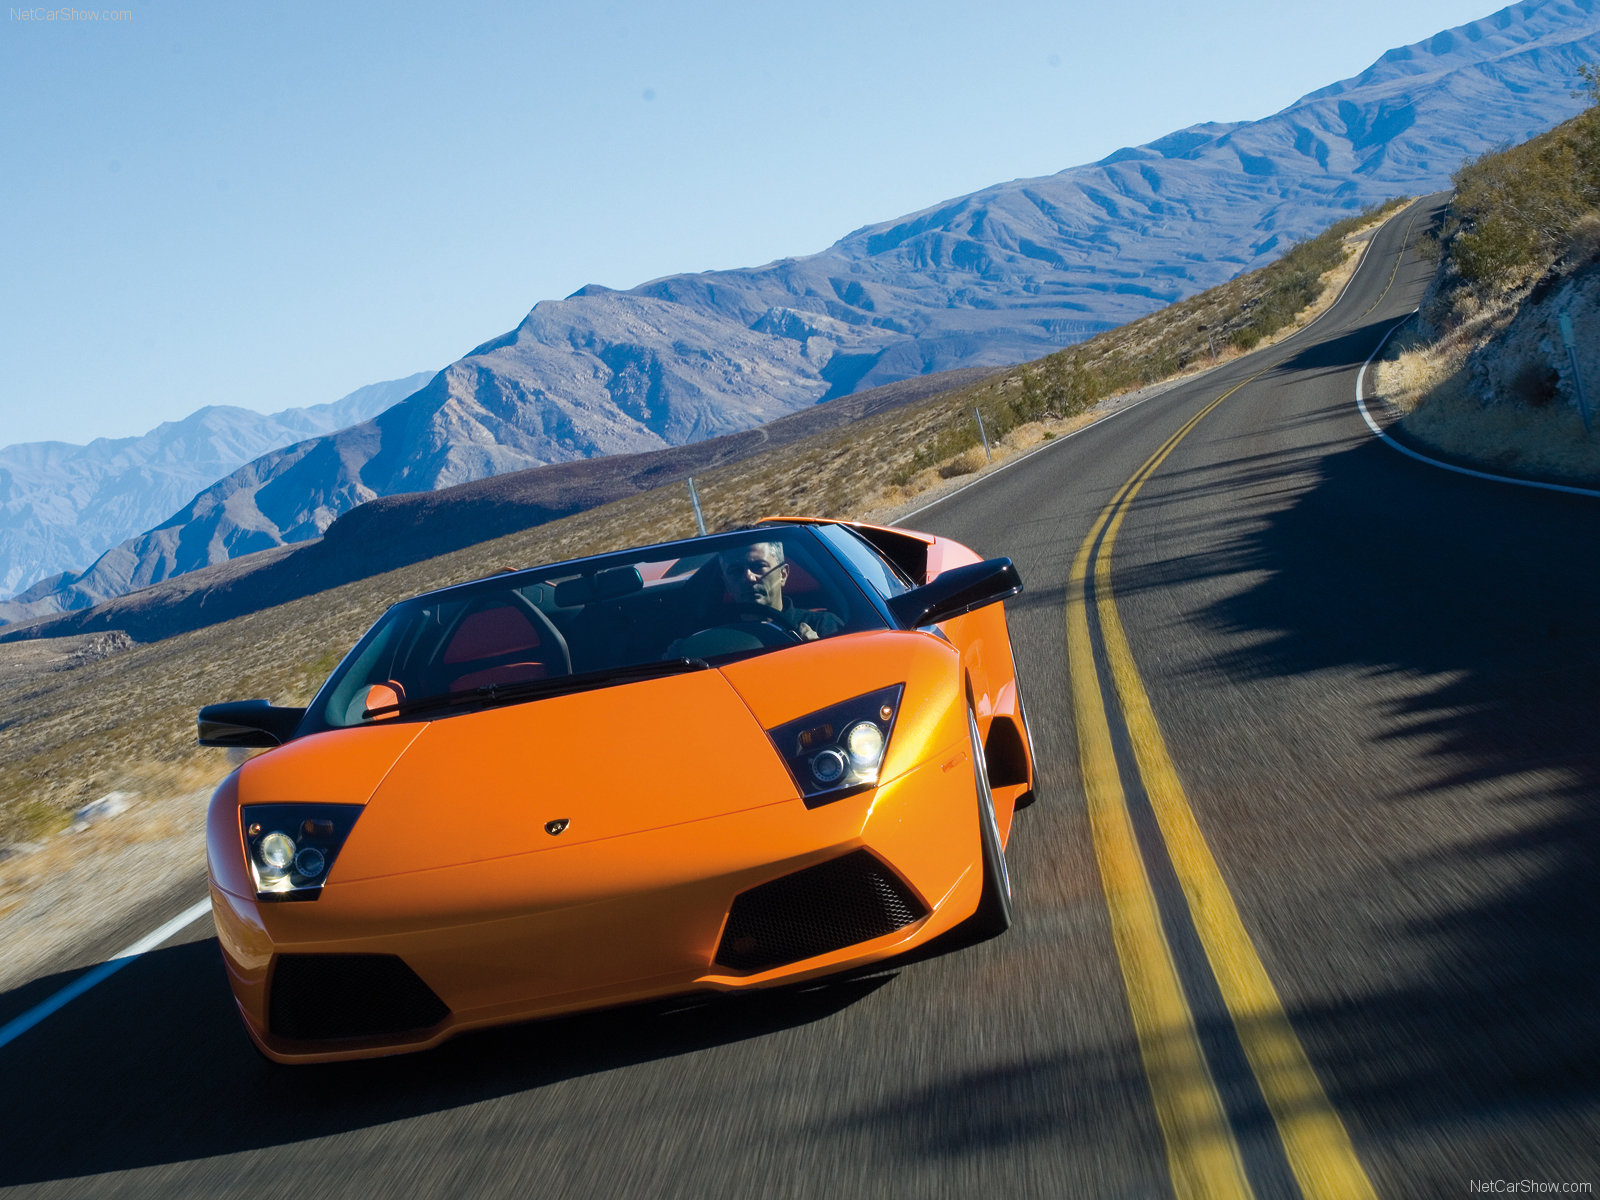 Lamborghini Murcielago LP640 photo 51561